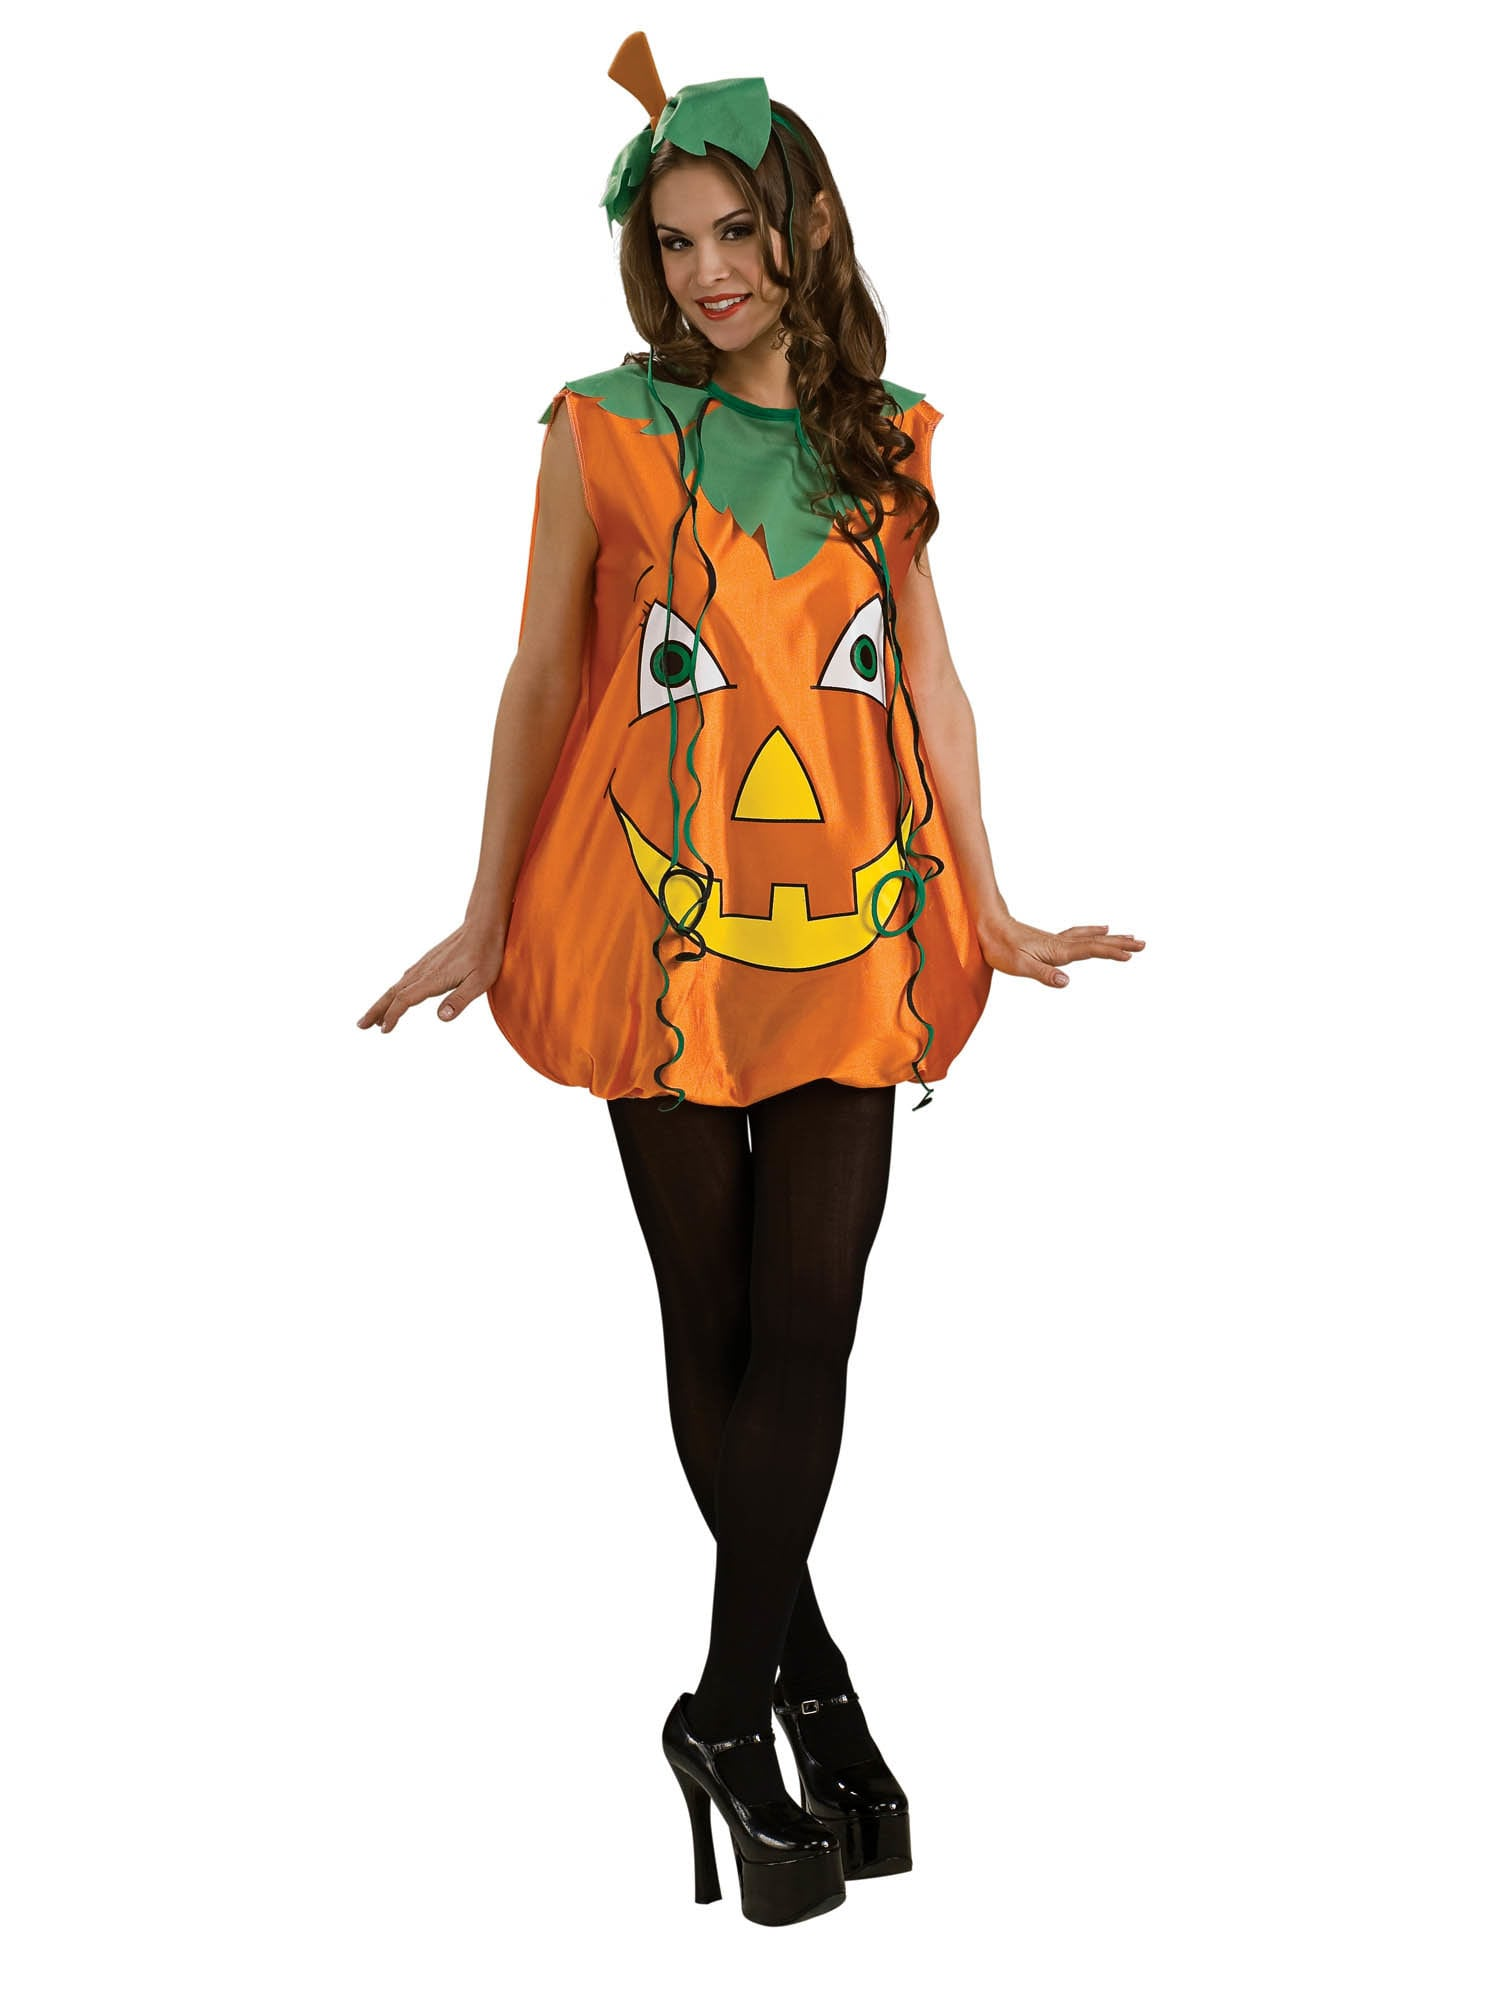 New Arrival  sc 1 st  Wholesale Halloween Costumes & Pumpkin Pie Dessert Costume - Mens Costumes for 2018 | Wholesale ...